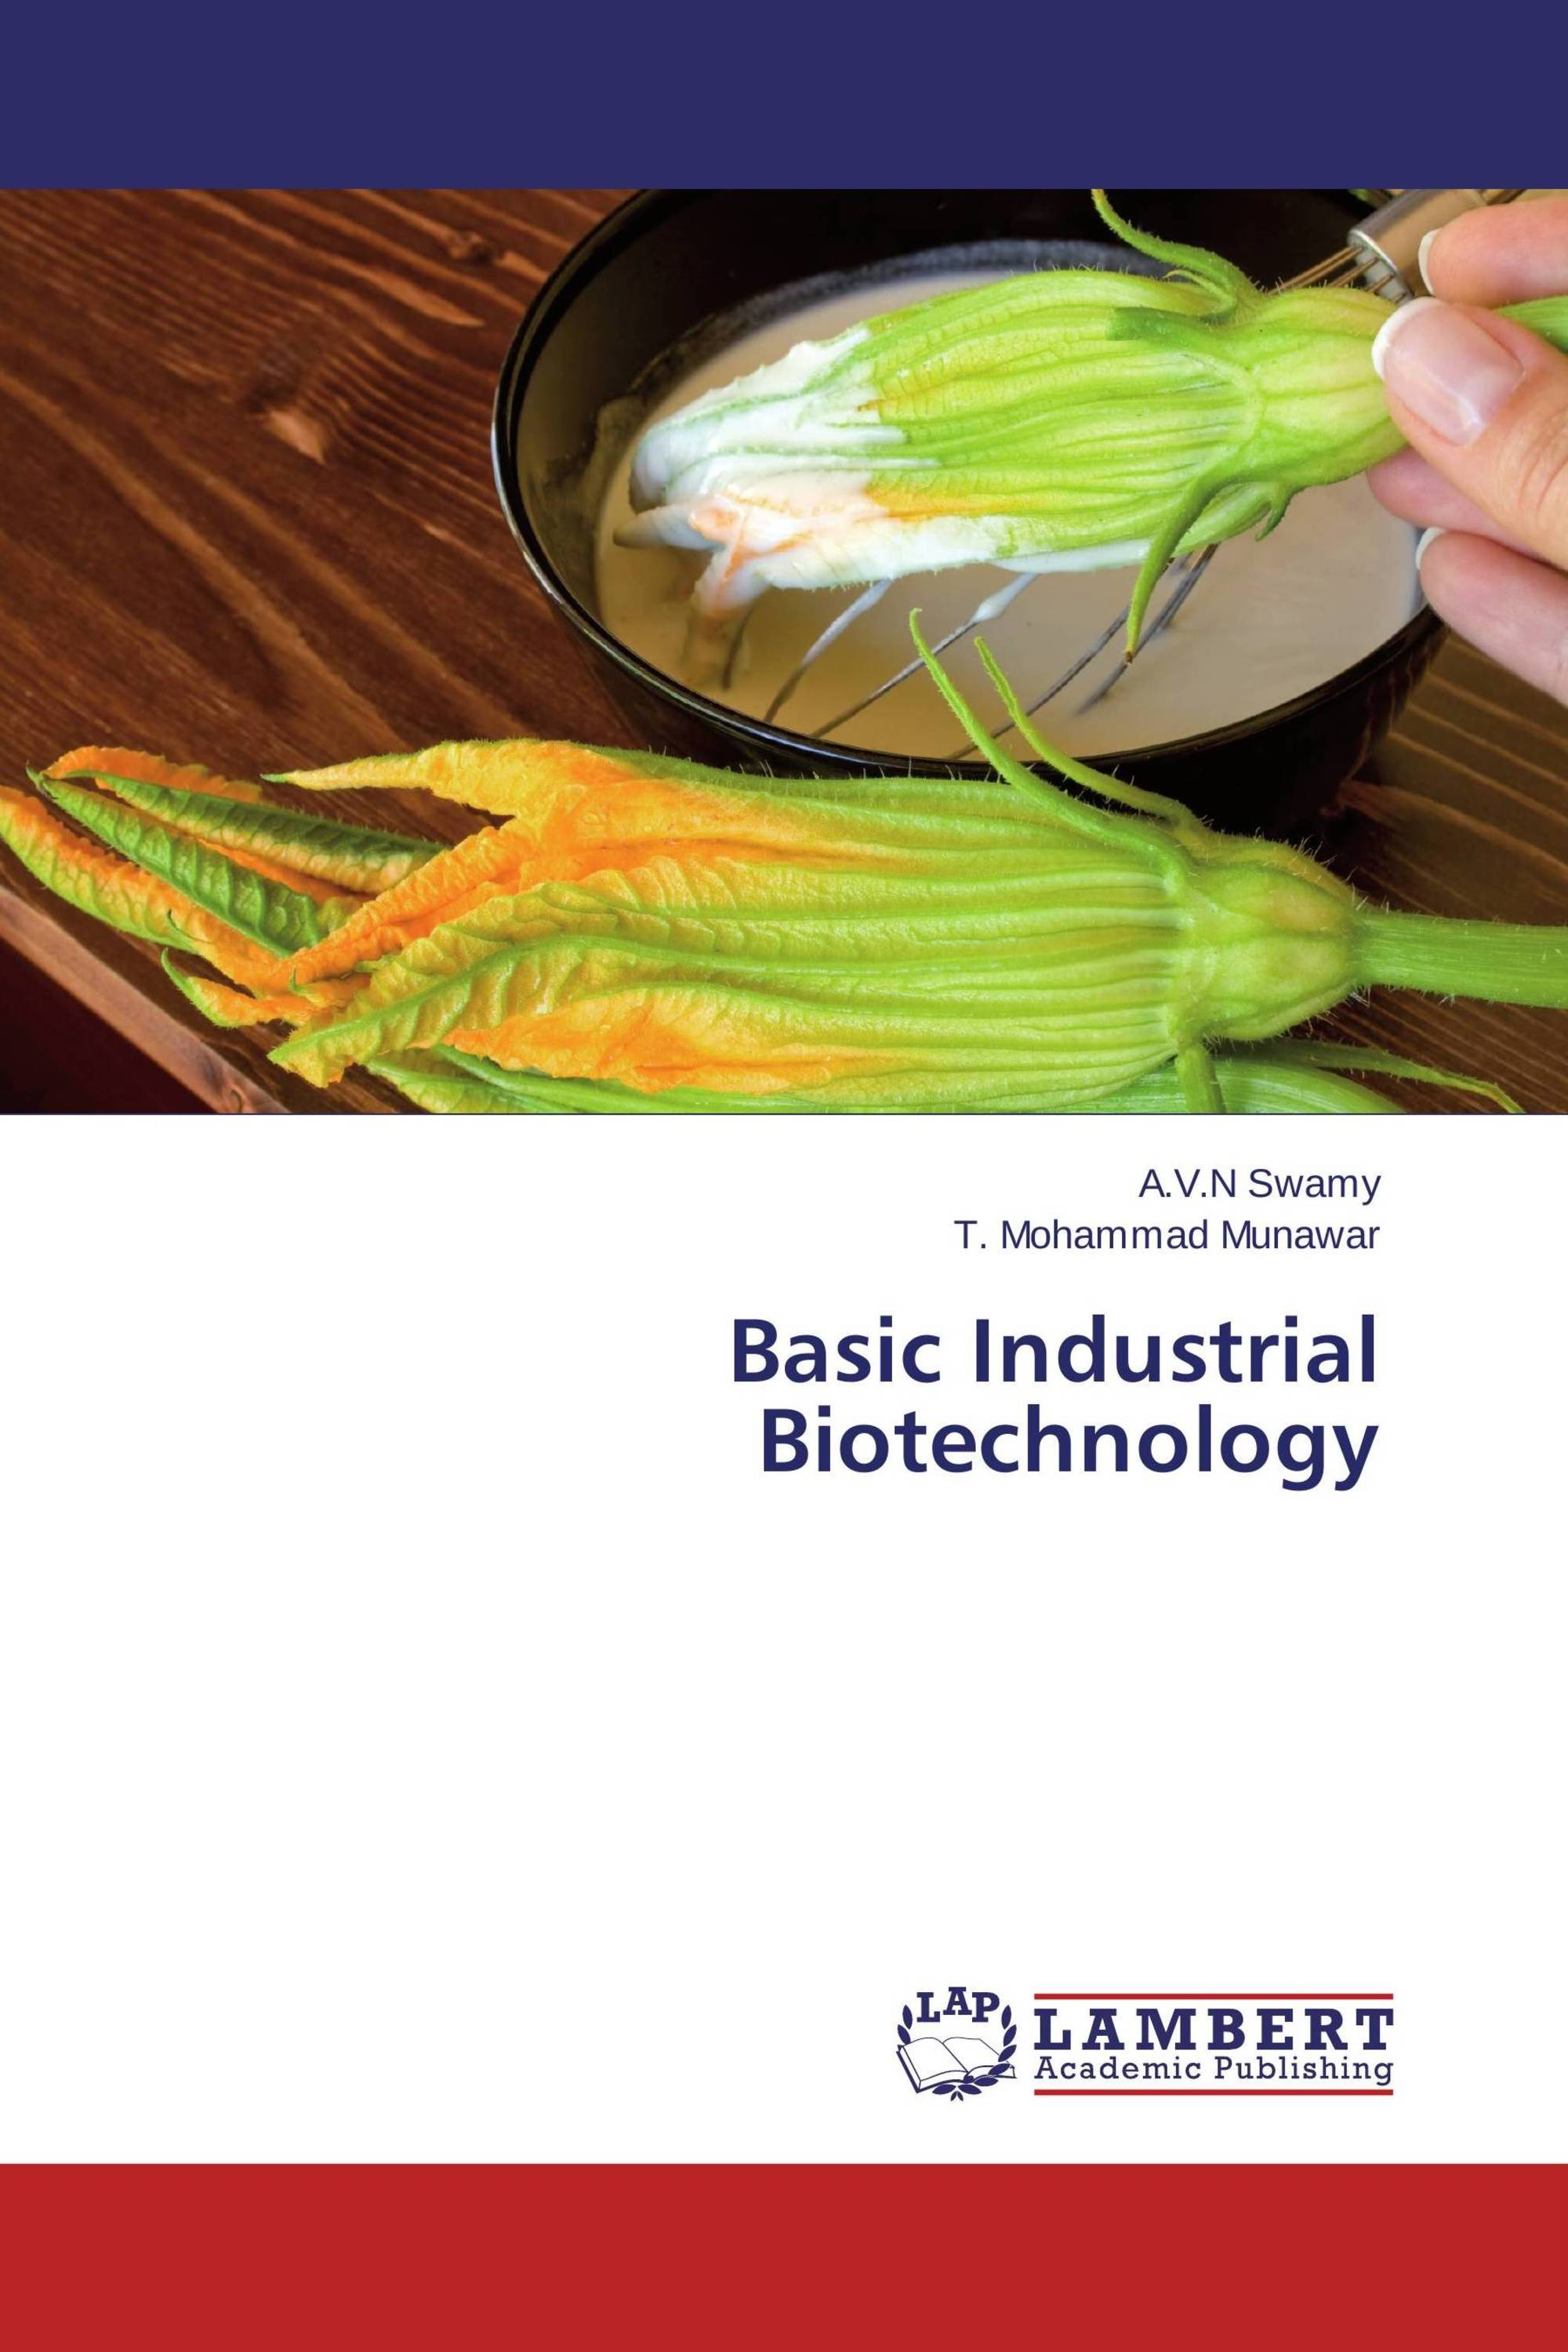 Basic Industrial Biotechnology